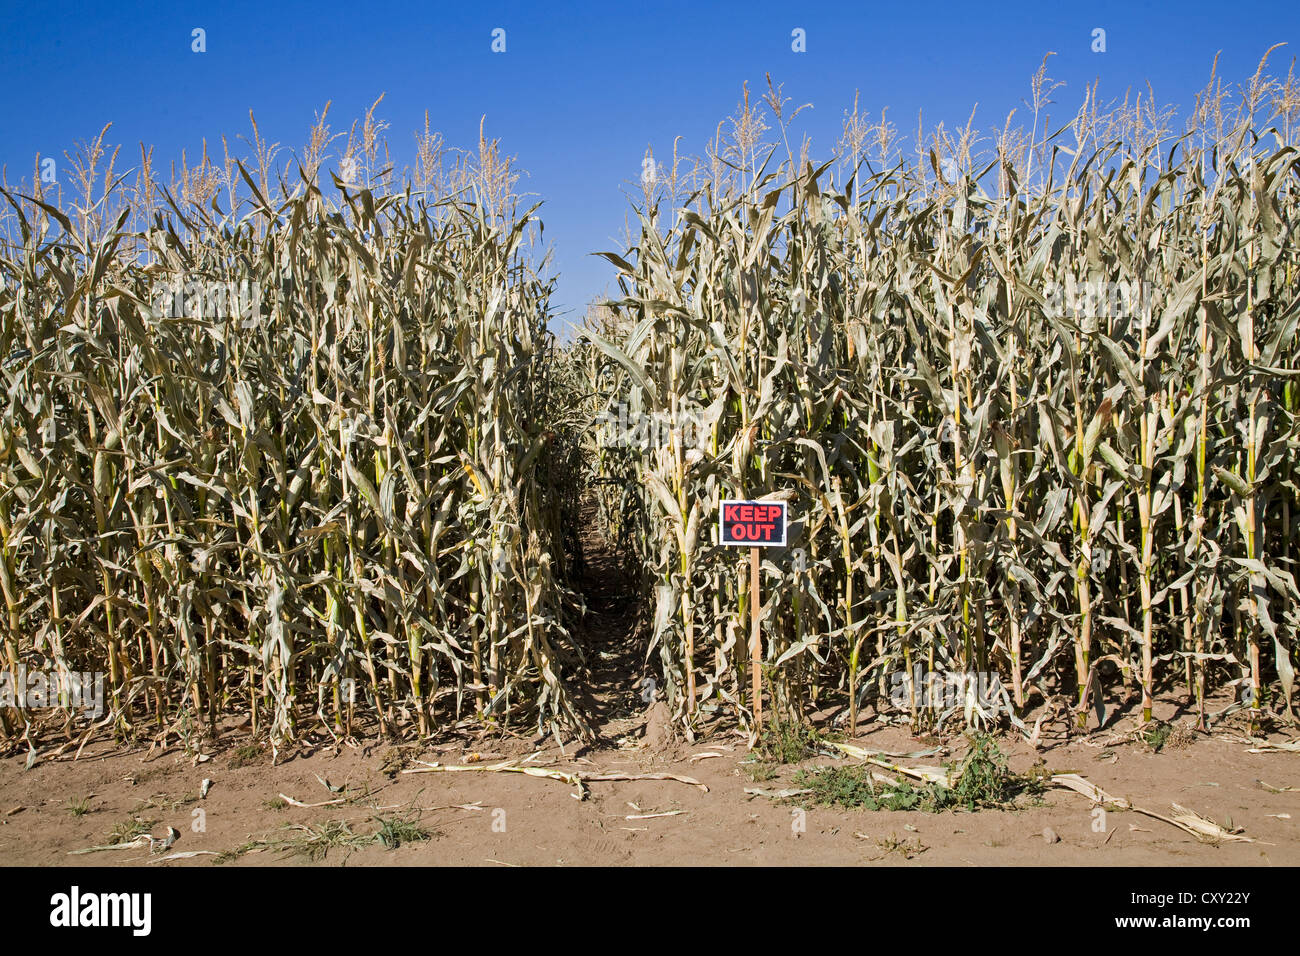 A corn patch with a keep out sign in front of it, on a farm in central Oregon. - Stock Image